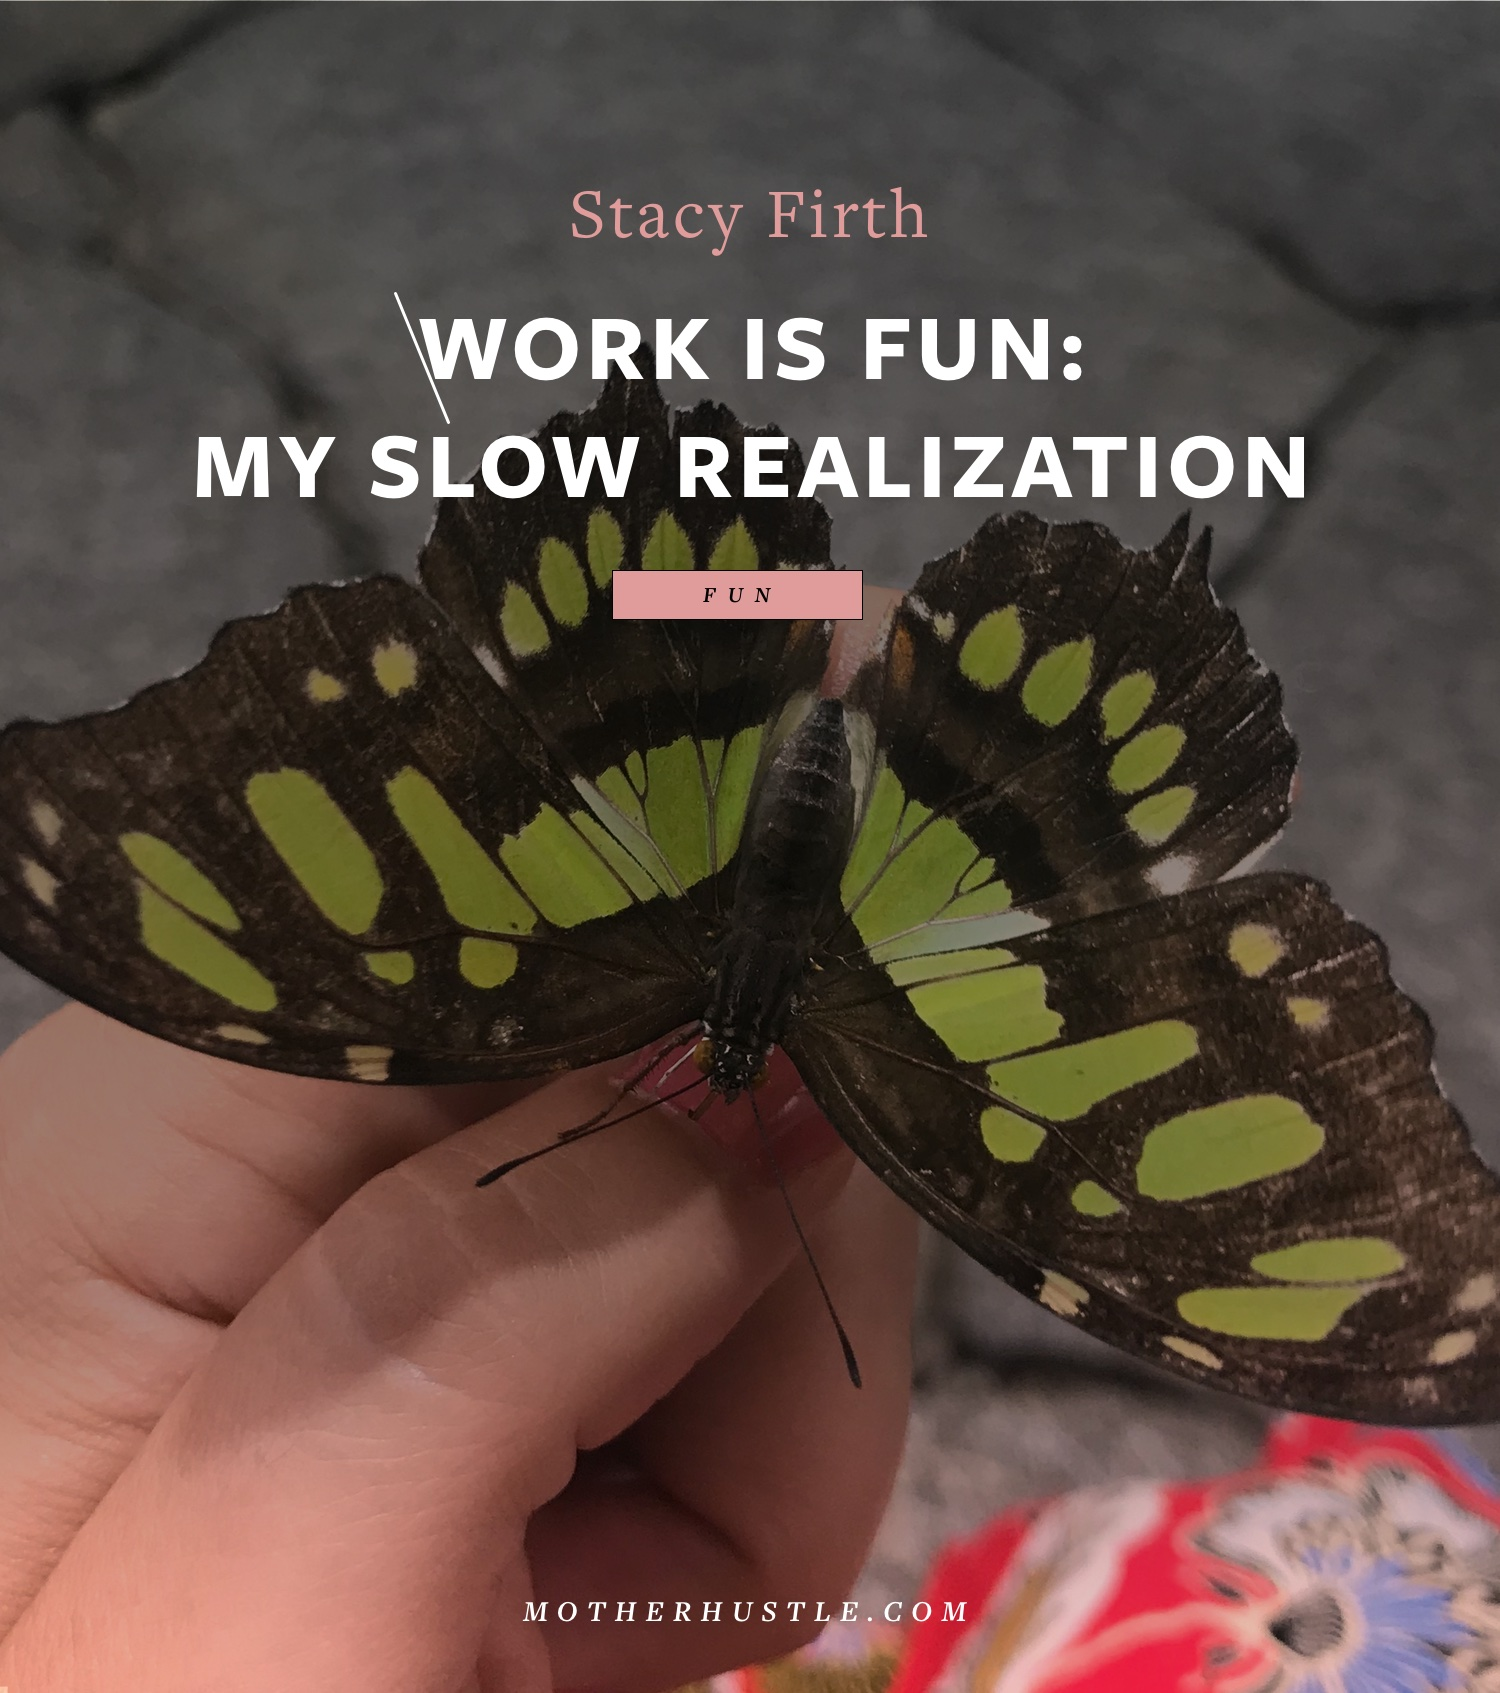 Work IS Fun- My Slow Realization - by Stacy Firth for MotherHustle